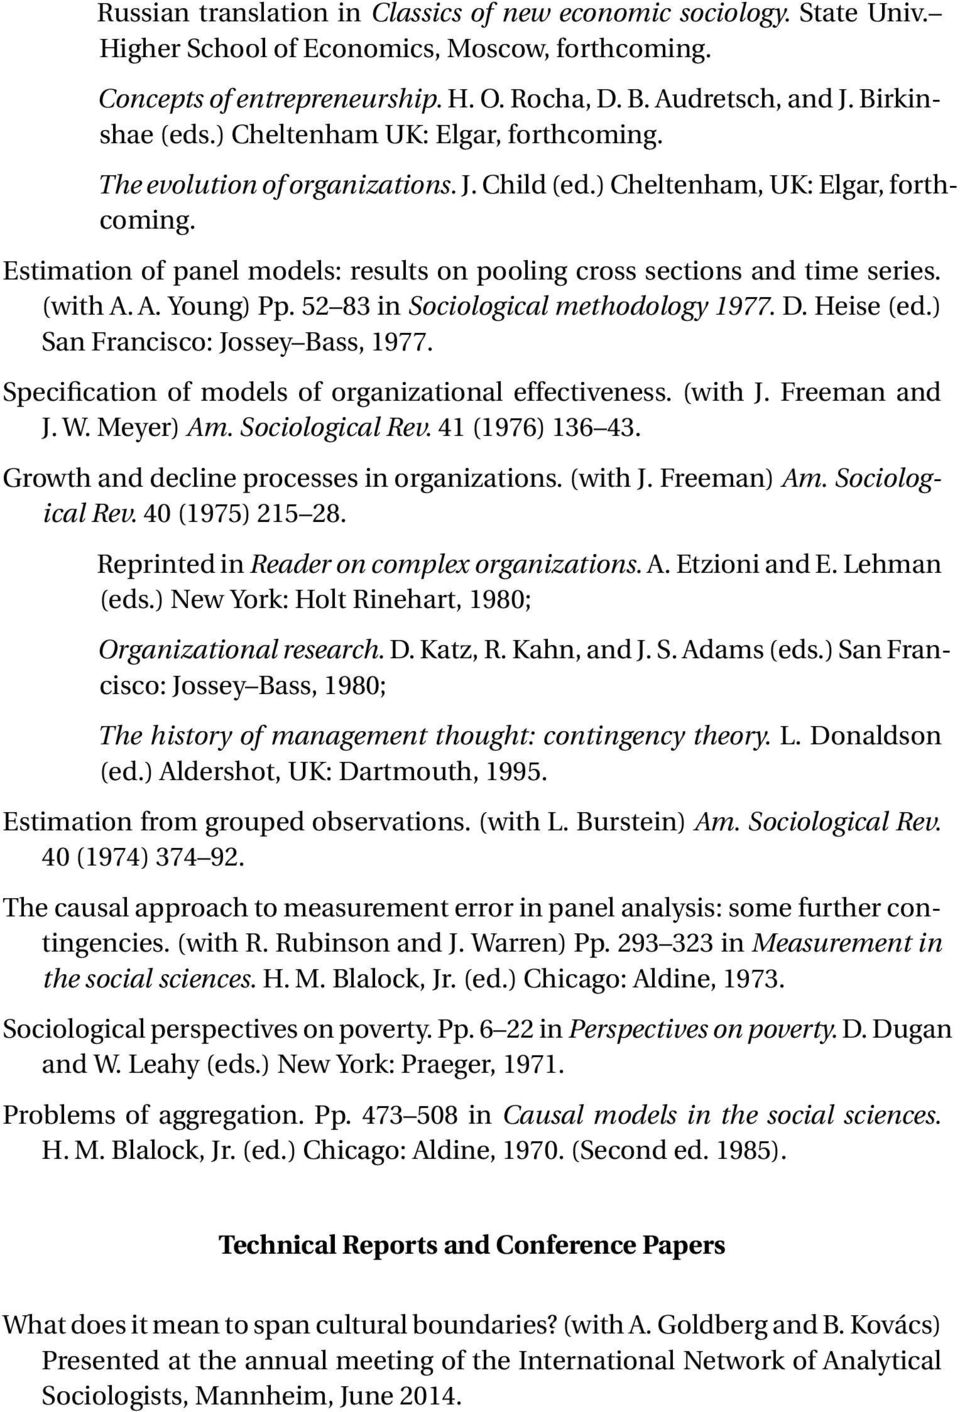 Estimation of panel models: results on pooling cross sections and time series. (with A. A. Young) Pp. 52 83 in Sociological methodology 1977. D. Heise (ed.) San Francisco: Jossey Bass, 1977.